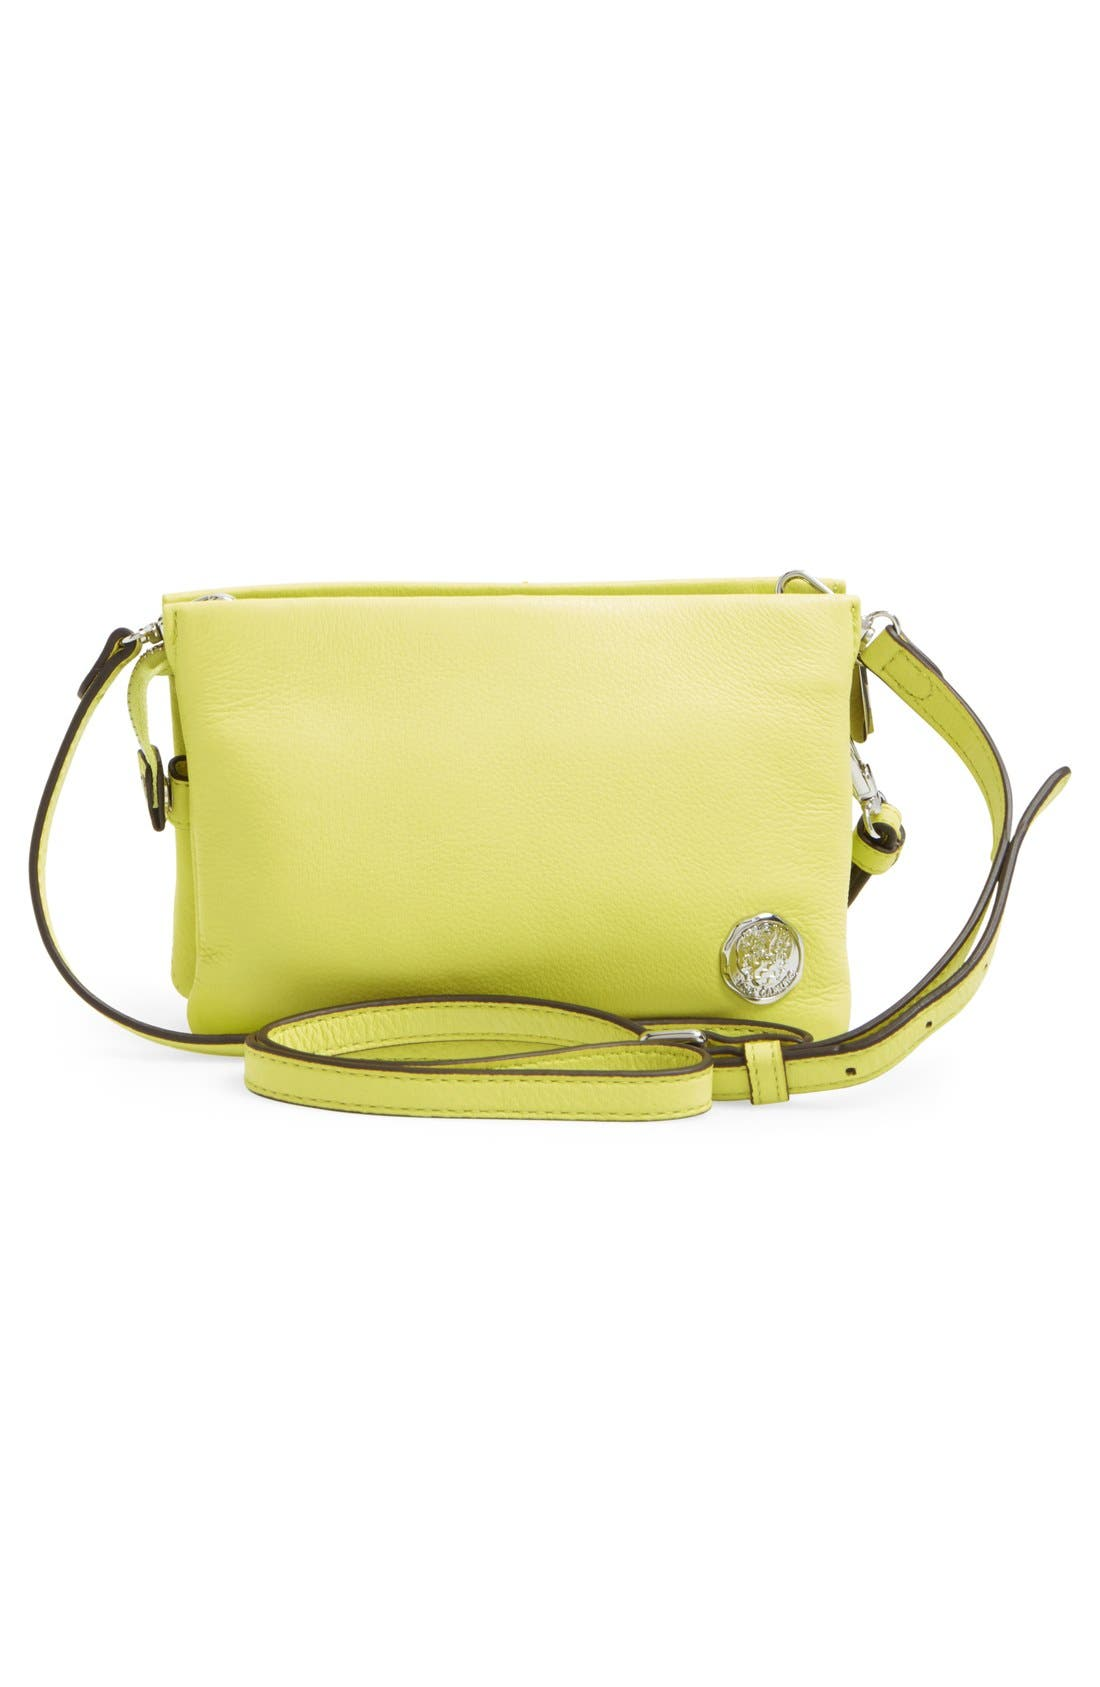 'Cami' Leather Crossbody Bag,                             Alternate thumbnail 95, color,